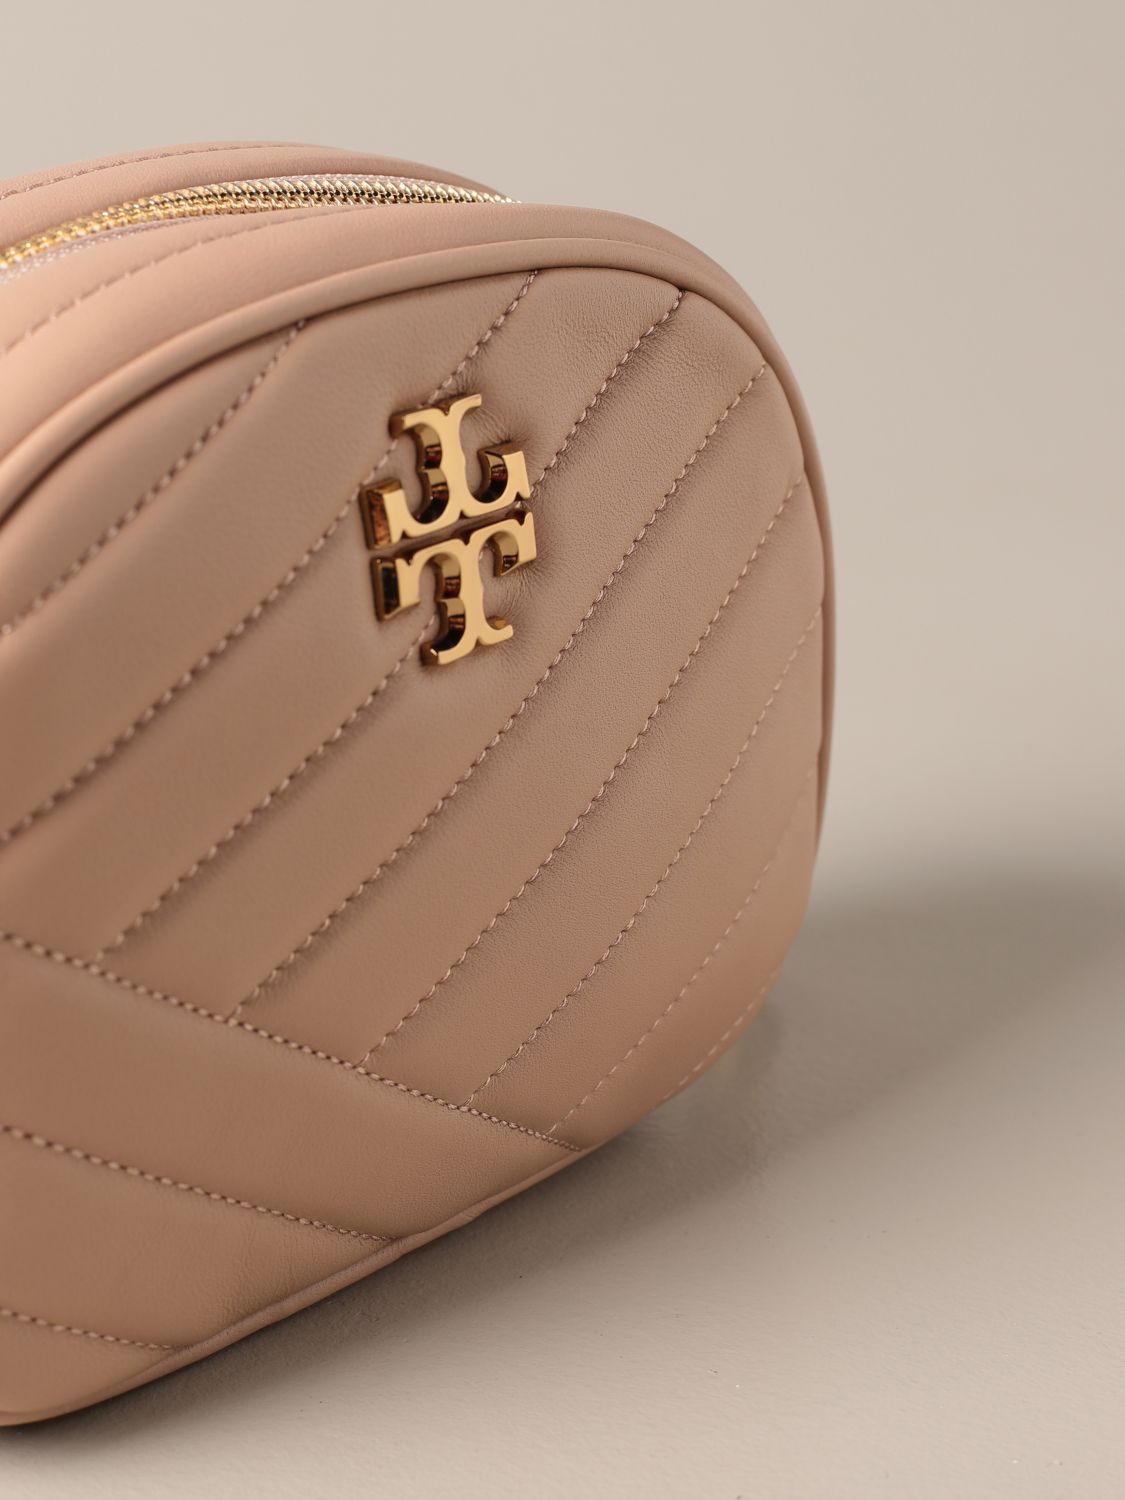 Crossbody bags Tory Burch: Kira Tory Burch bag in quilted leather sand 3